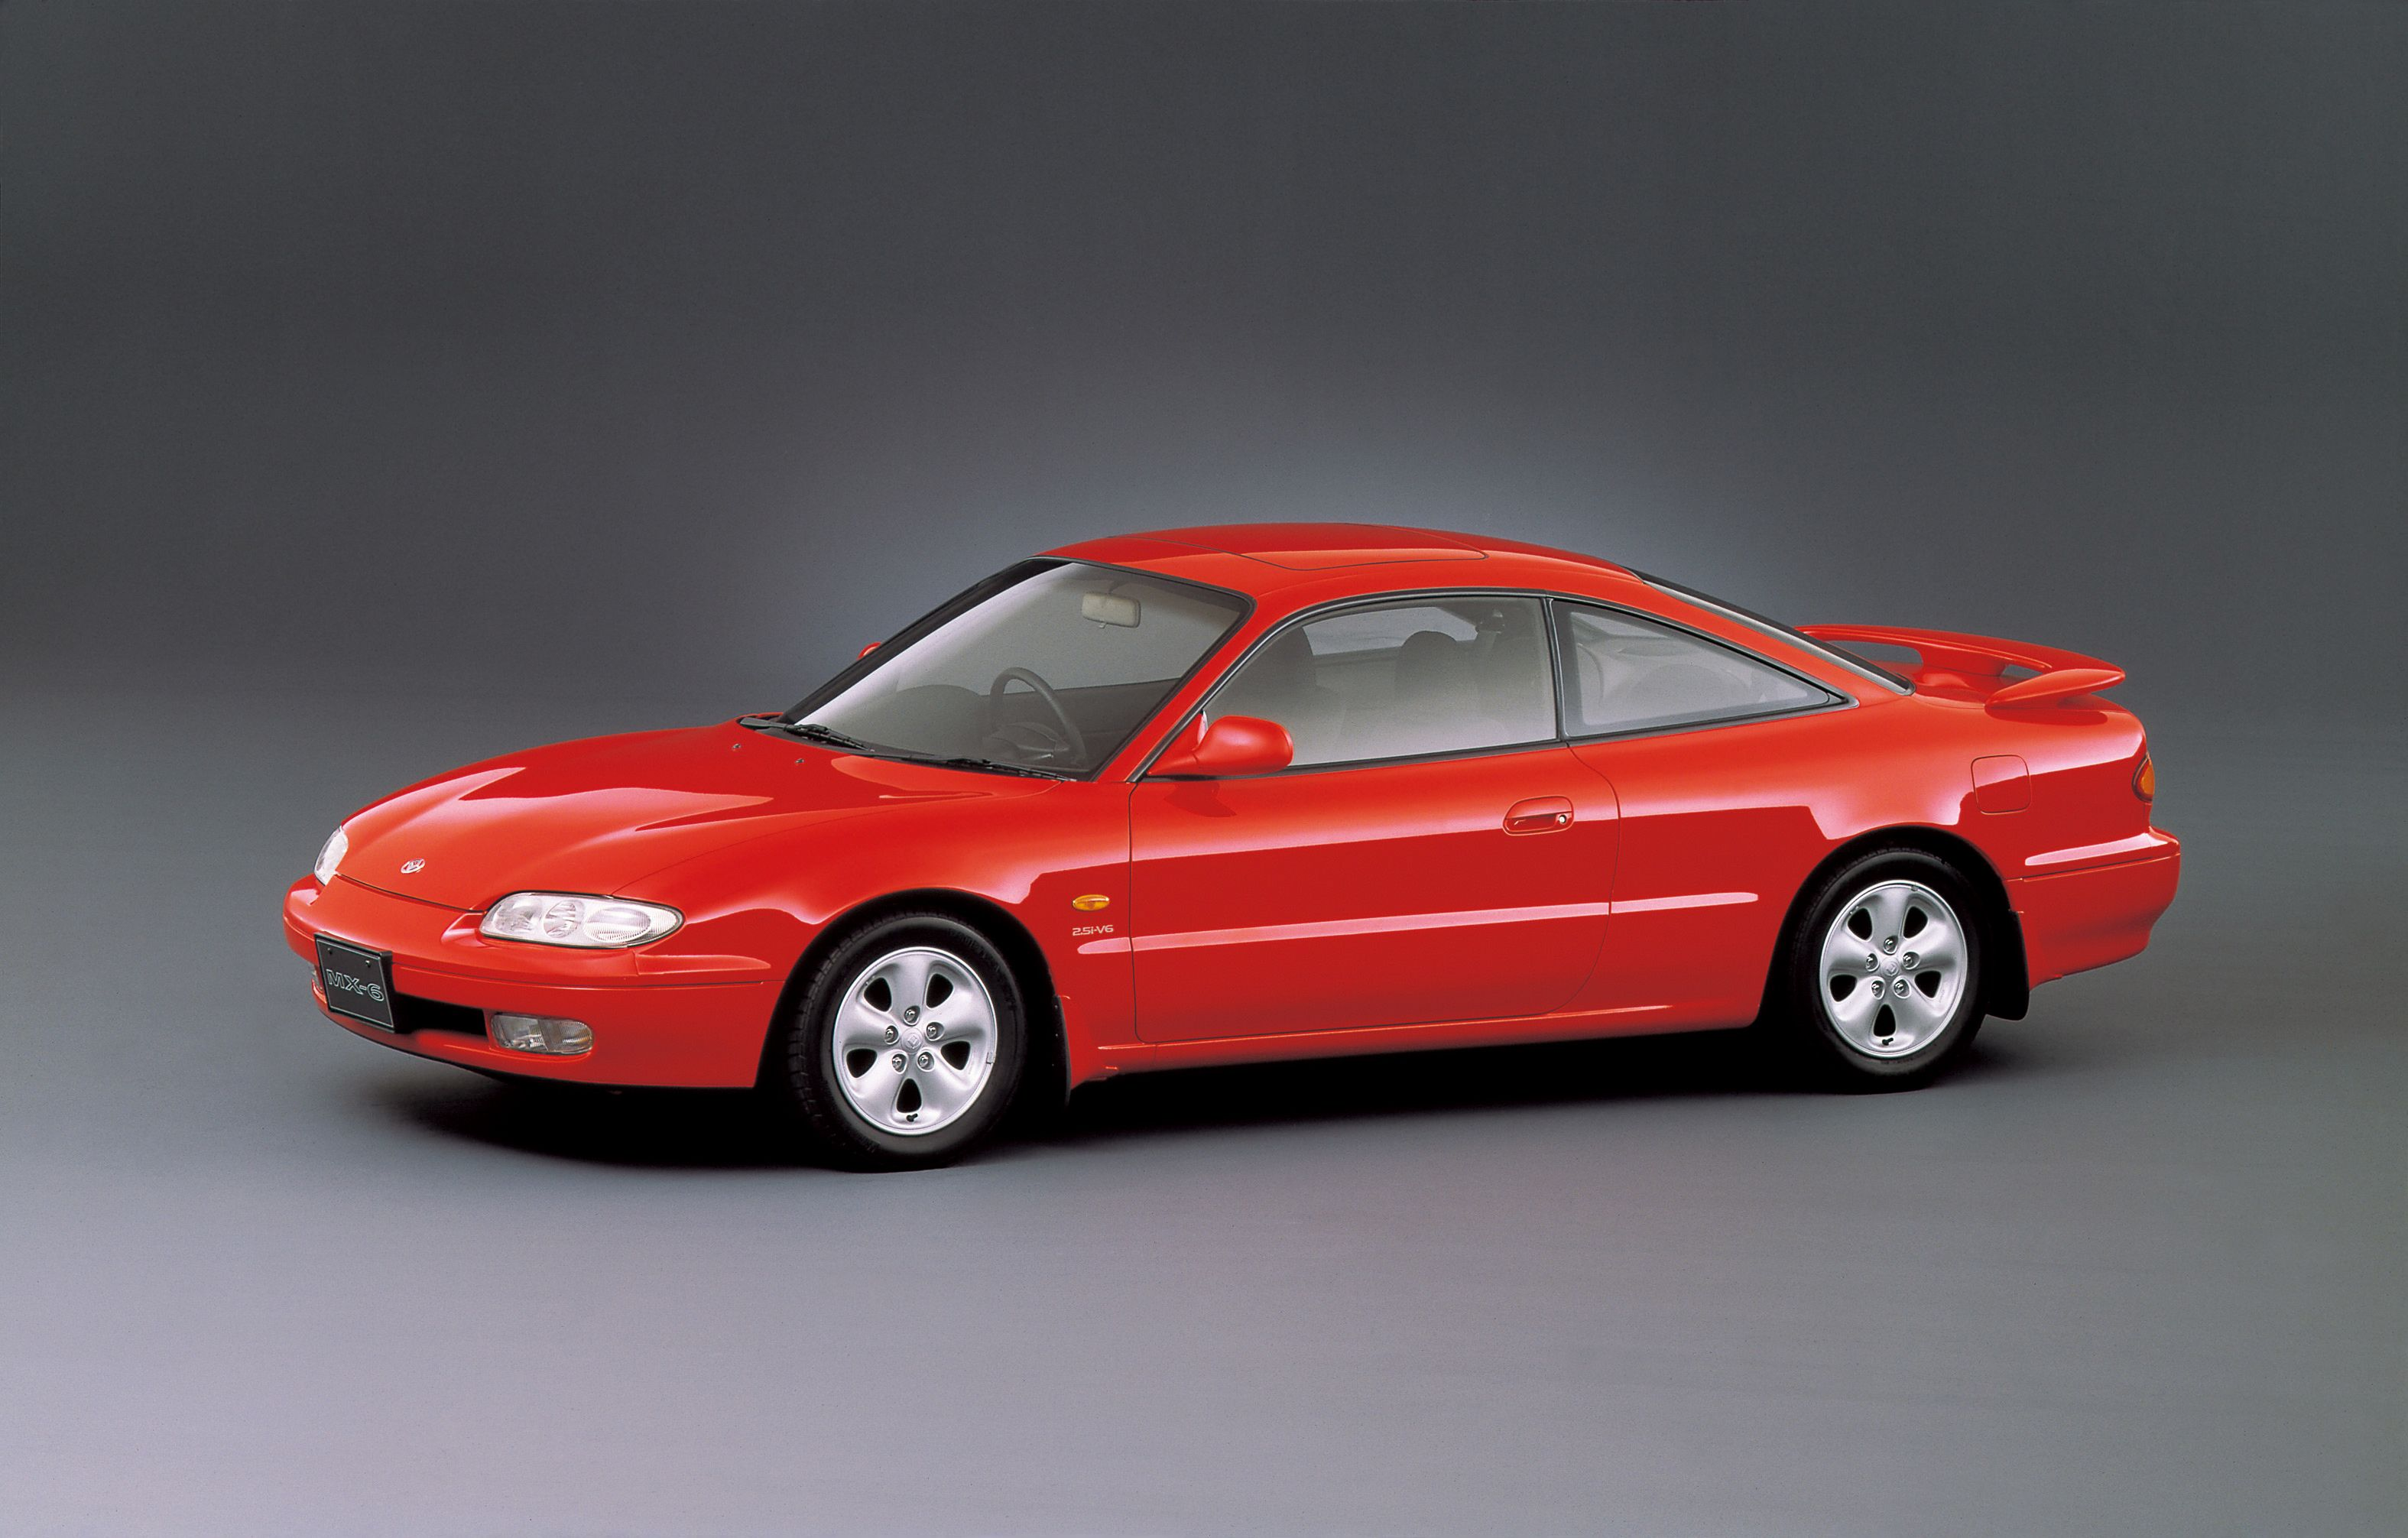 Lol they should bring this car back or have a Mazda 6 coupe with